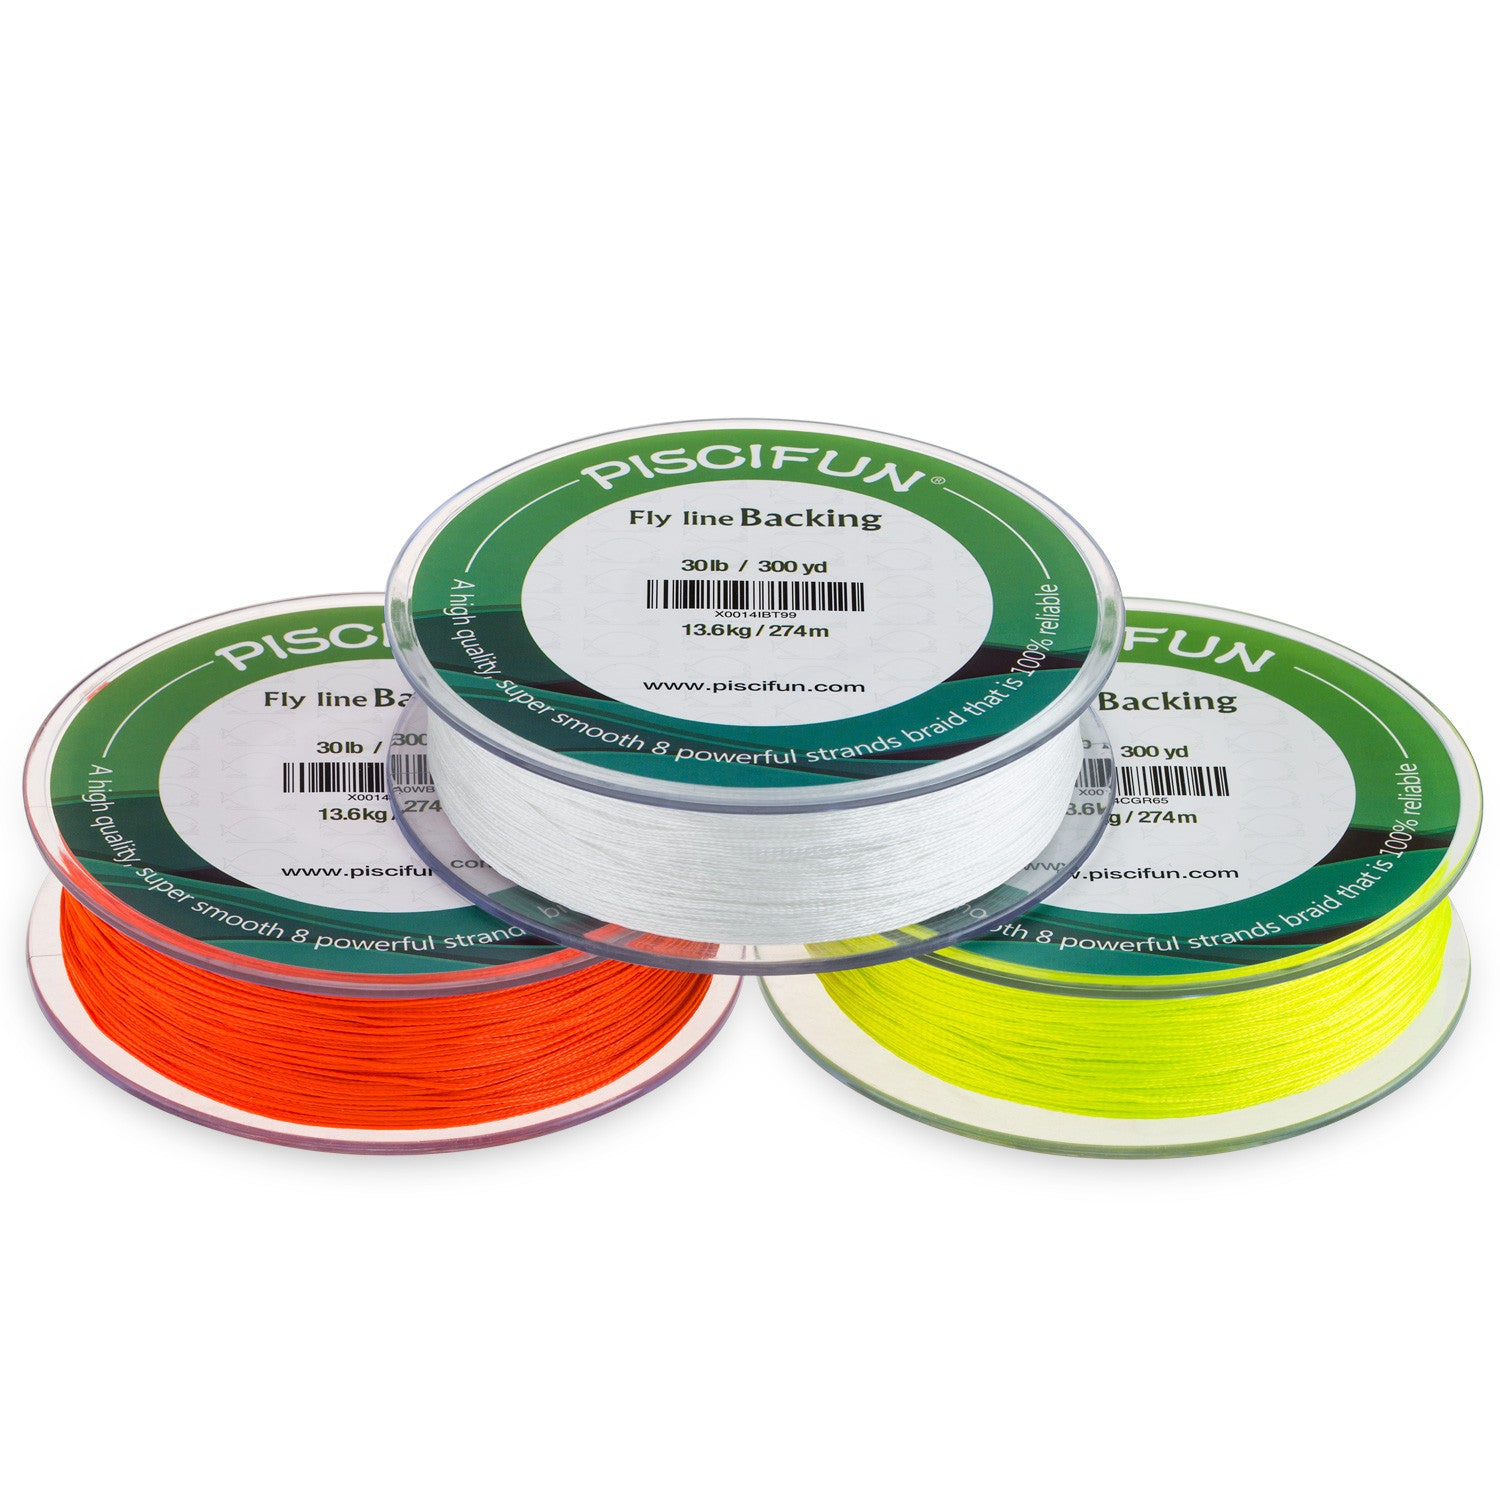 Fly line backing line for fly fishing 100 300yds 20 30lb for Fly fishing backing